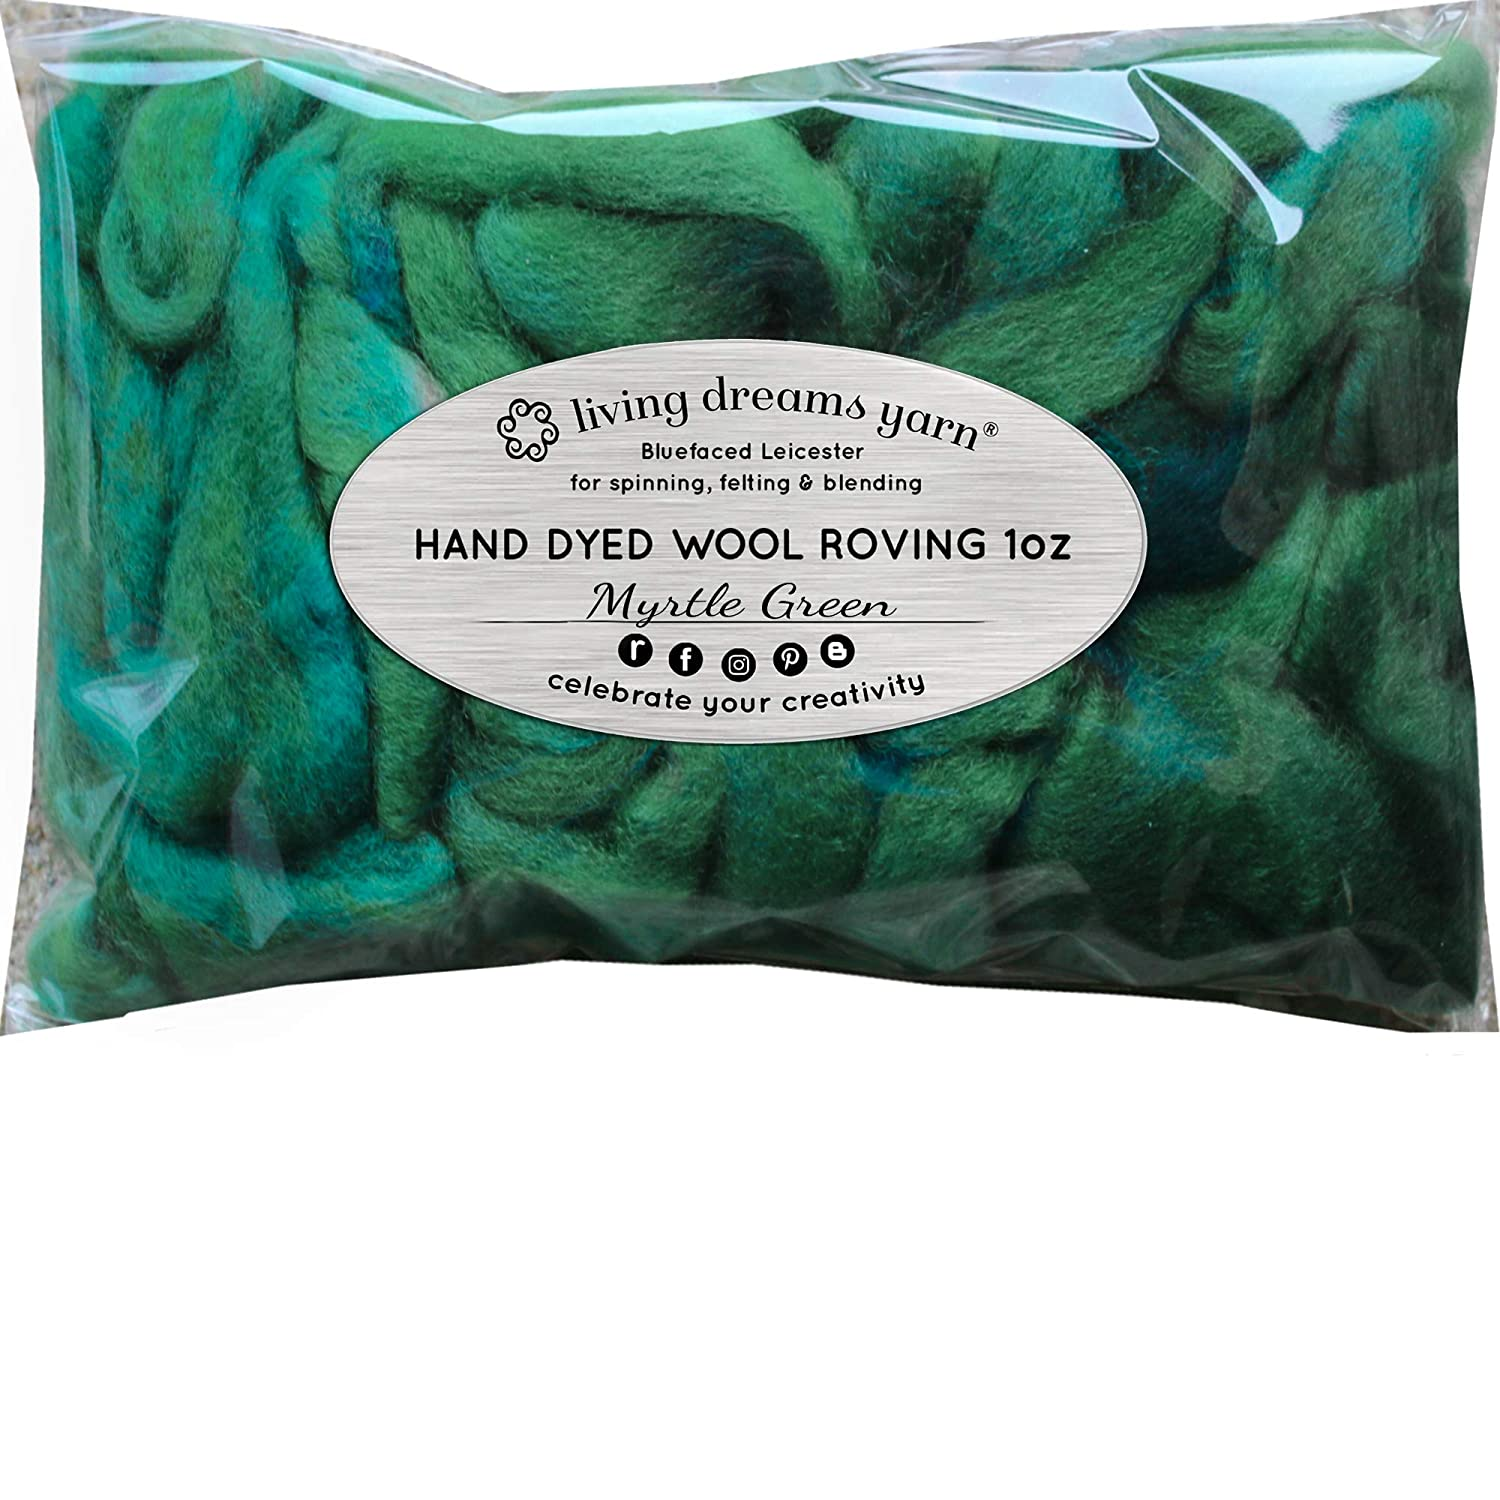 Wool Roving Hand Dyed Artisanal Craft Fiber ideal for Felting 1 Ounce Weaving Super Soft BFL Combed Top Pre-Drafted for Easy Hand Spinning Ocean Green Wall Hangings and Embellishments